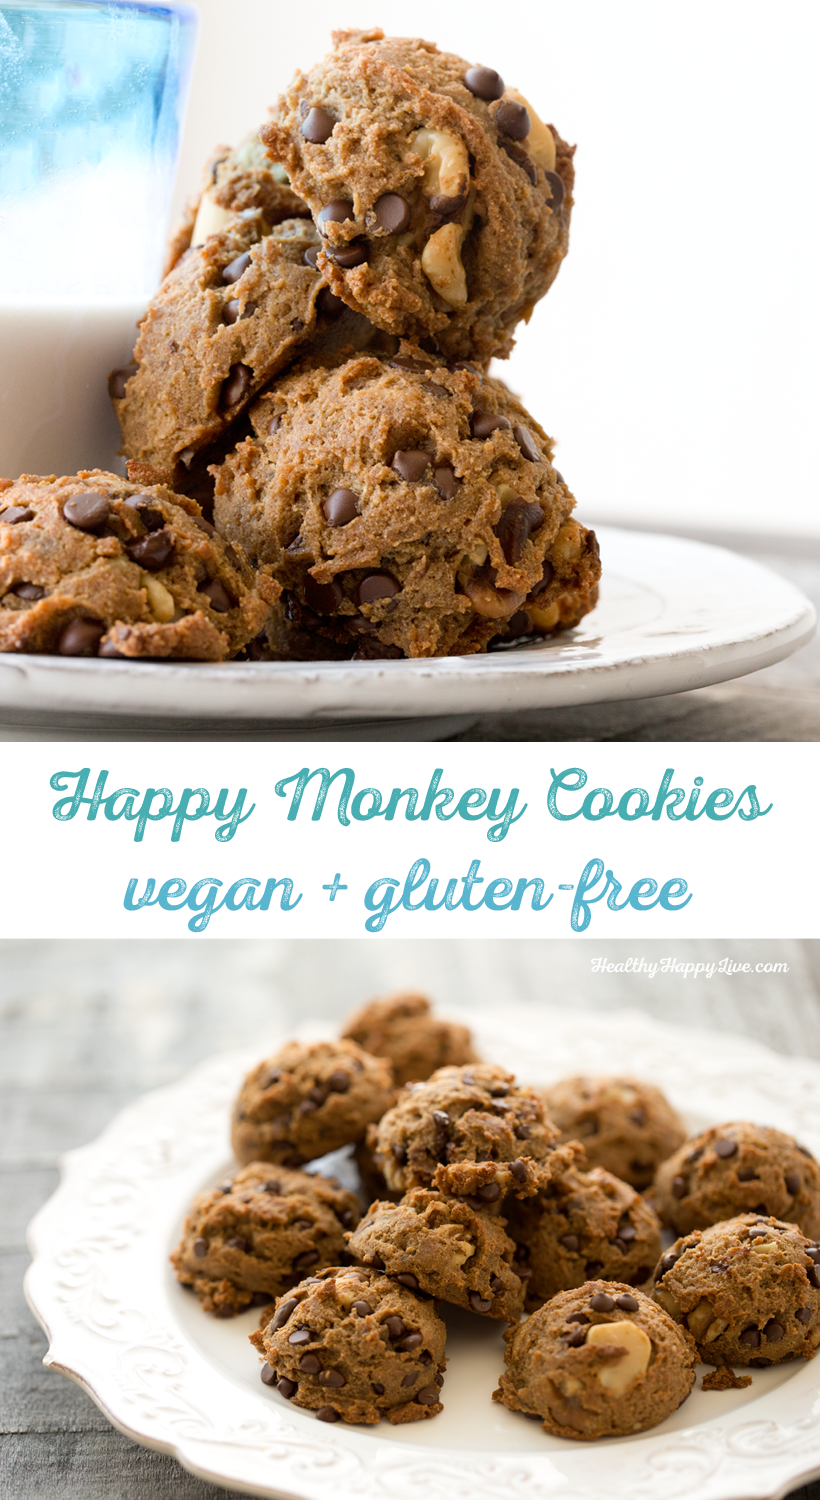 Happy Monkey Cookies, gluten free, vegan, soy free and amazing!